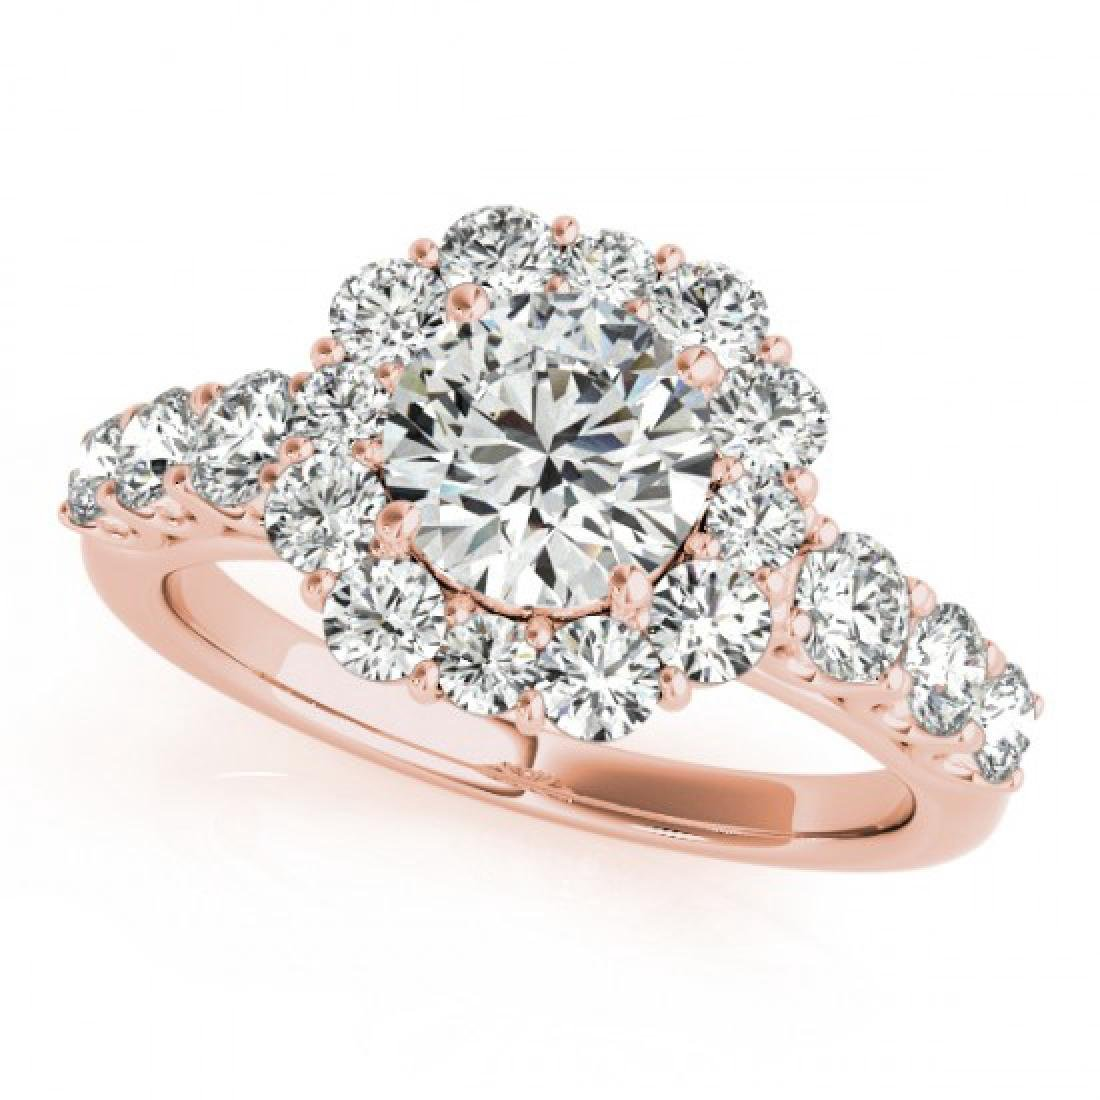 2.9 CTW Certified VS/SI Diamond Solitaire Halo Ring 18K